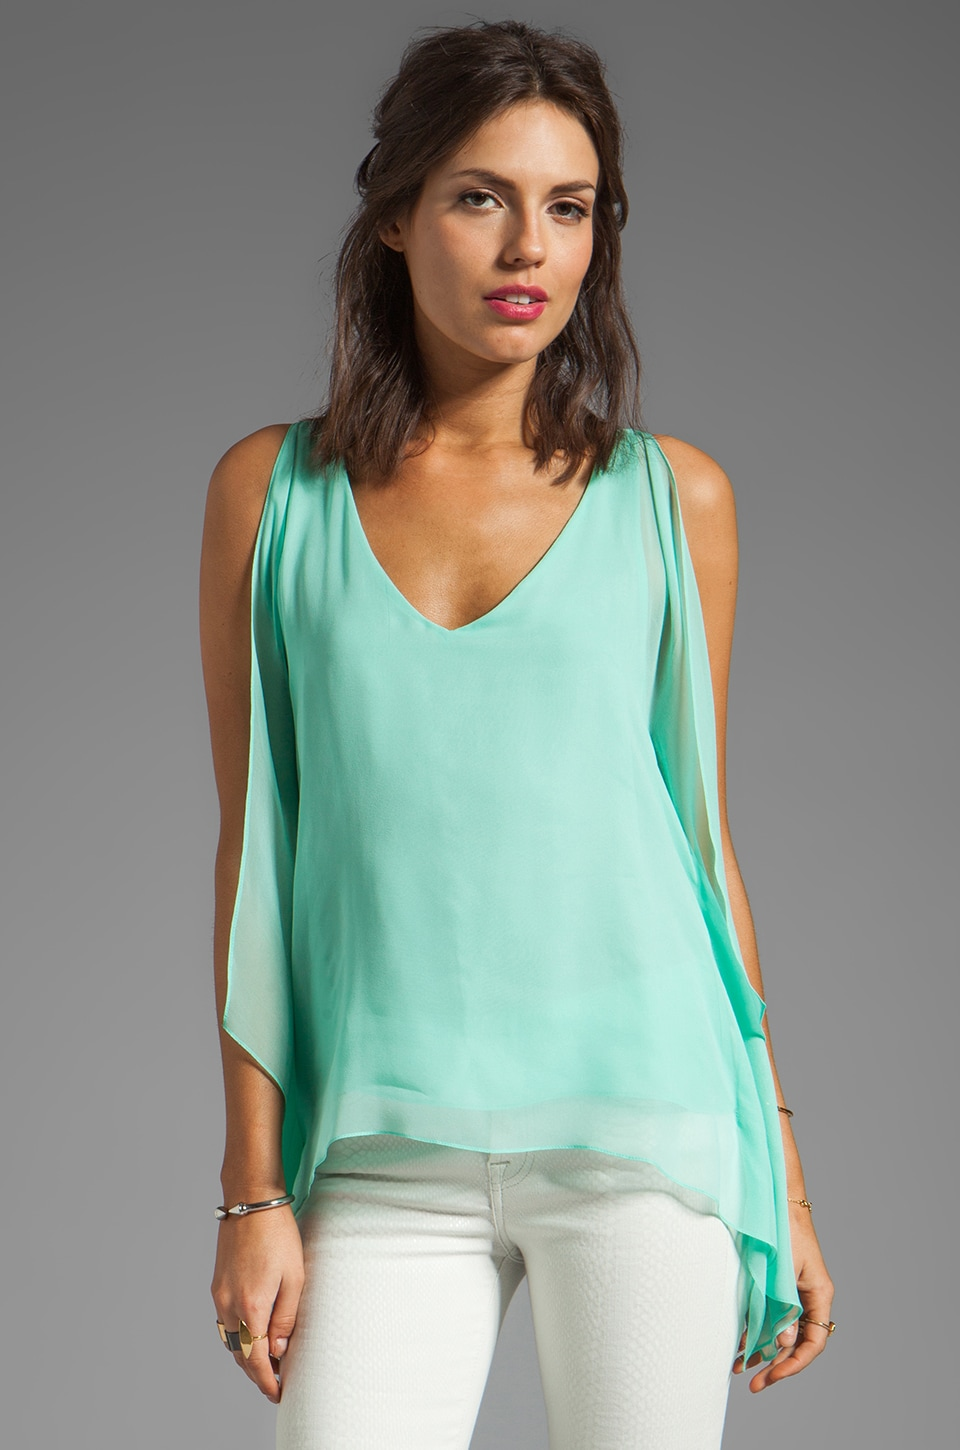 Jay Godfrey Shelbourne Kimono Blouse in Mint